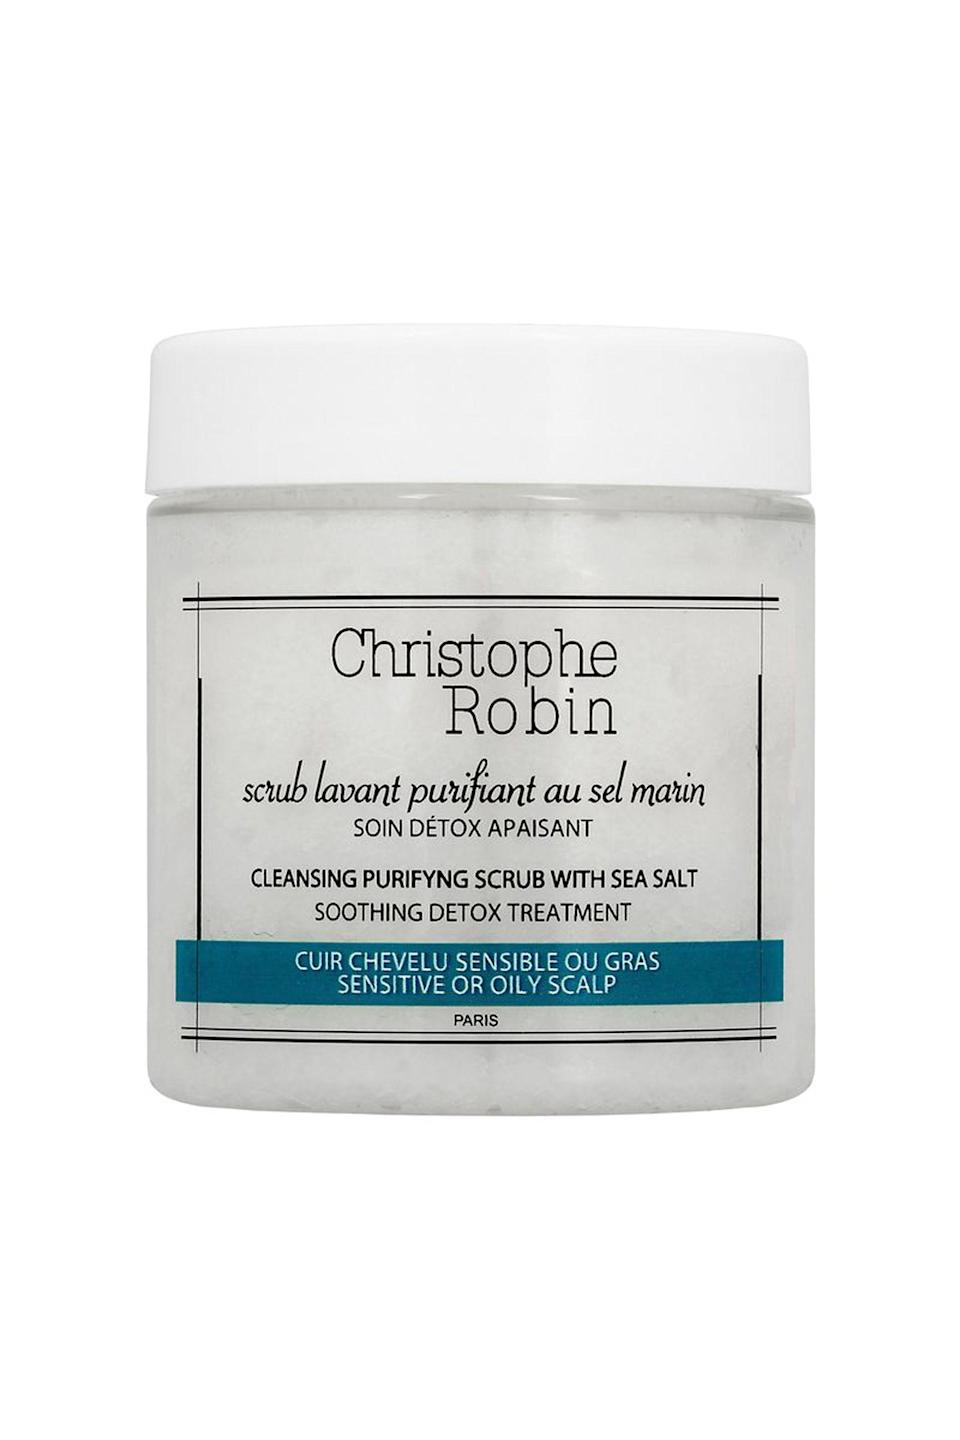 """<p><strong>Christophe Robin</strong></p><p>sephora.com</p><p><strong>$19.00</strong></p><p><a href=""""https://go.redirectingat.com?id=74968X1596630&url=https%3A%2F%2Fwww.sephora.com%2Fproduct%2Fcleansing-purifying-scrub-with-sea-salt-P401452&sref=https%3A%2F%2Fwww.cosmopolitan.com%2Fstyle-beauty%2Fbeauty%2Fg26114920%2Fbest-scalp-scrubs%2F"""" rel=""""nofollow noopener"""" target=""""_blank"""" data-ylk=""""slk:Shop Now"""" class=""""link rapid-noclick-resp"""">Shop Now</a></p><p>So, it's been a while since you've given your hair a good clean. No worries—this ultra-powerful sea-salt scrub <strong>breaks down the most severe buildup in one use, </strong>making it a powerhouse for treating gunky scalps, fast. Use it in place of your regular <a href=""""https://www.cosmopolitan.com/style-beauty/beauty/g2149/best-shampoo-conditioner/"""" rel=""""nofollow noopener"""" target=""""_blank"""" data-ylk=""""slk:shampoo"""" class=""""link rapid-noclick-resp"""">shampoo</a> twice a week (don't worry; it'll still get your roots clean).</p>"""